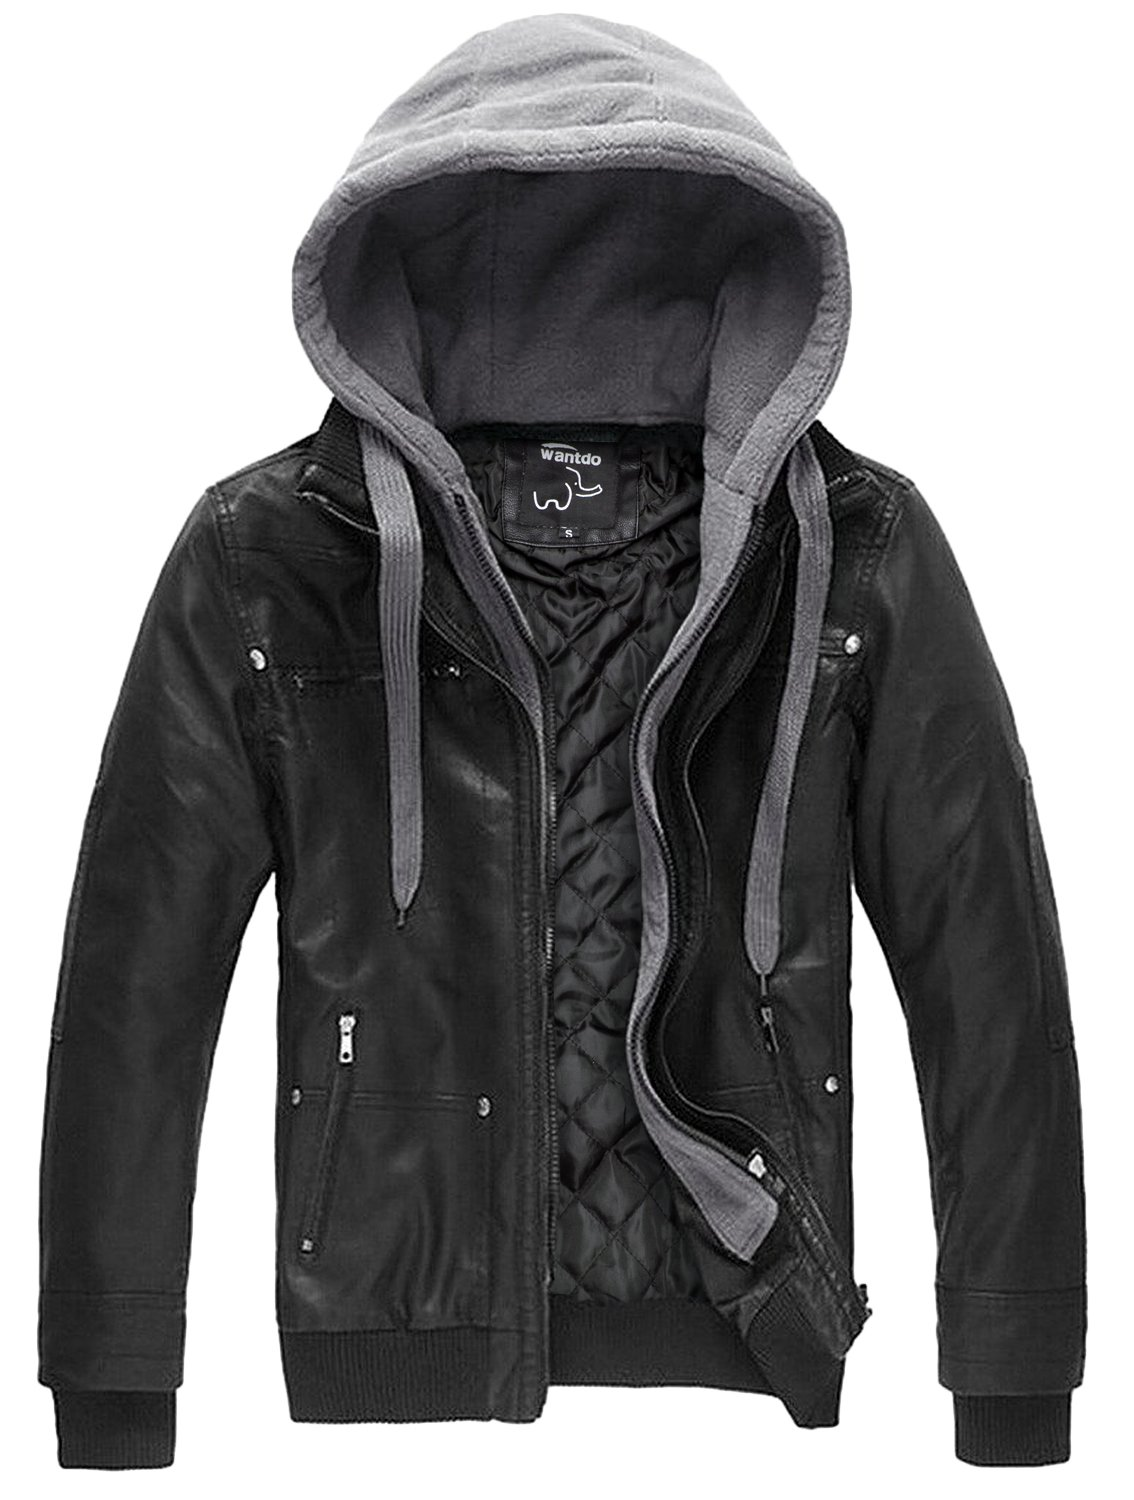 Wantdo Men's Leather Jacket with Removable Hood US XX-Large Black(Heavy) by Wantdo